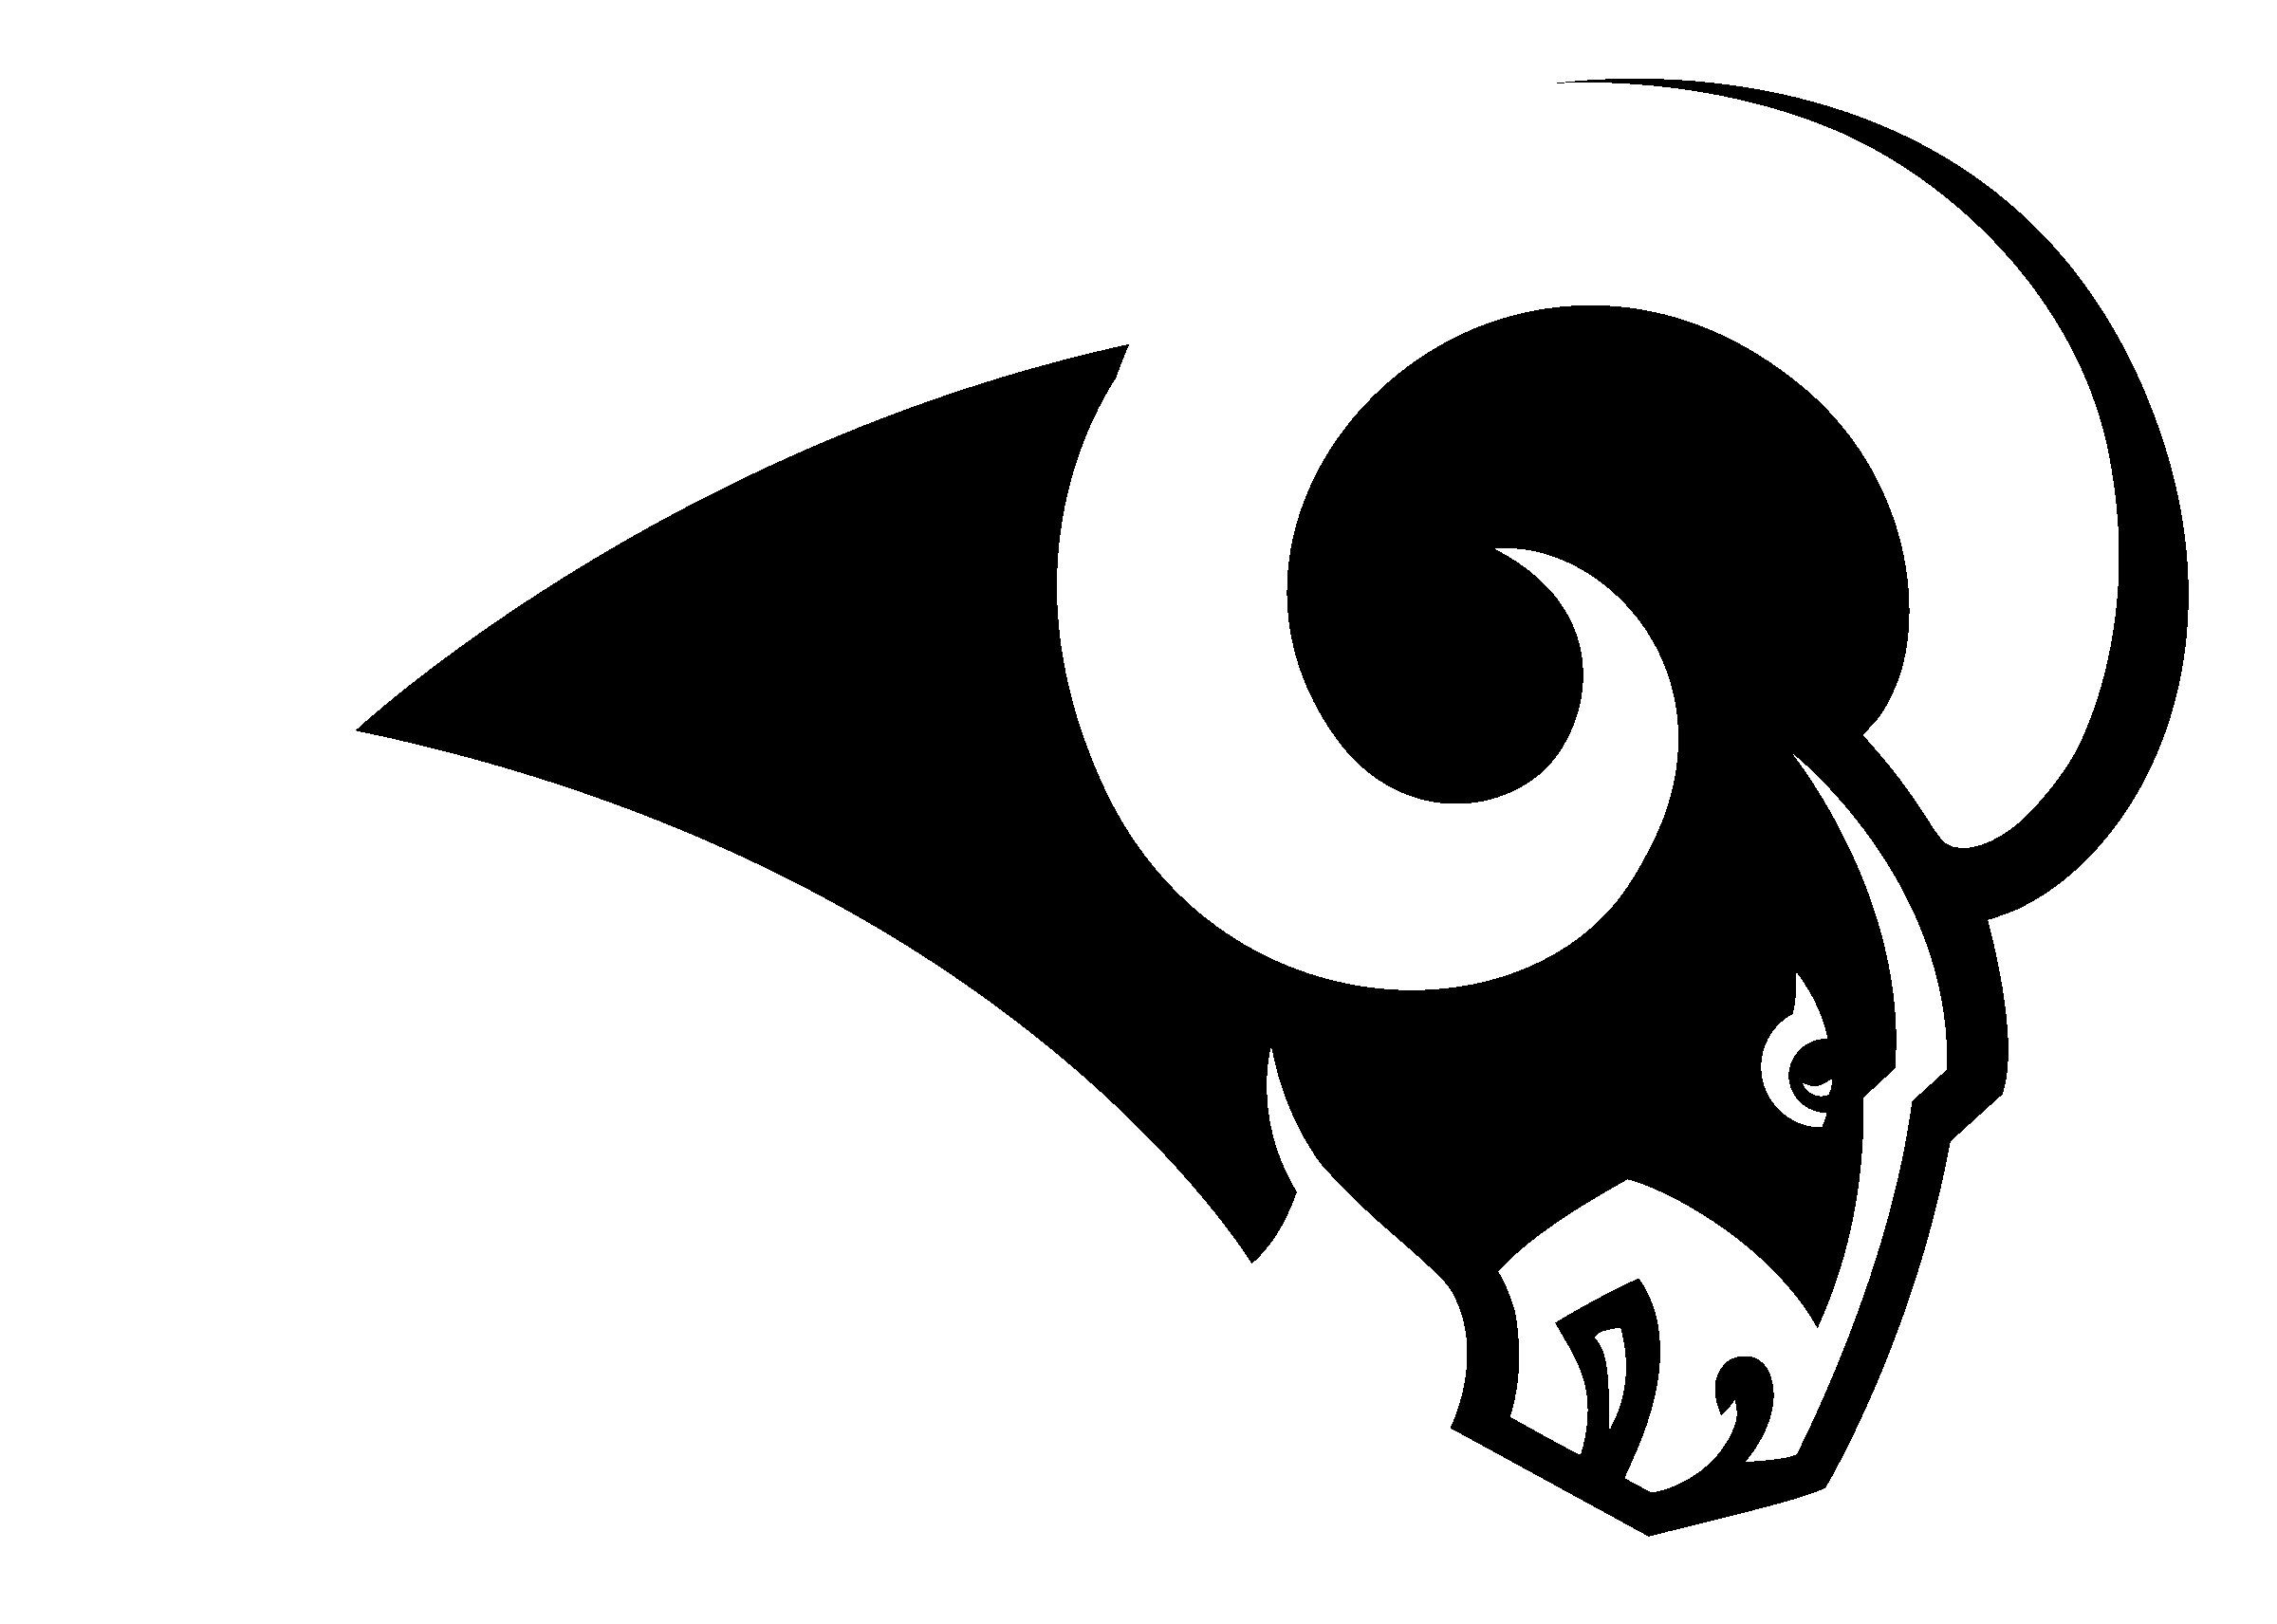 St Louis History In Black And White: St. Louis Rams Logo PNG Transparent & SVG Vector